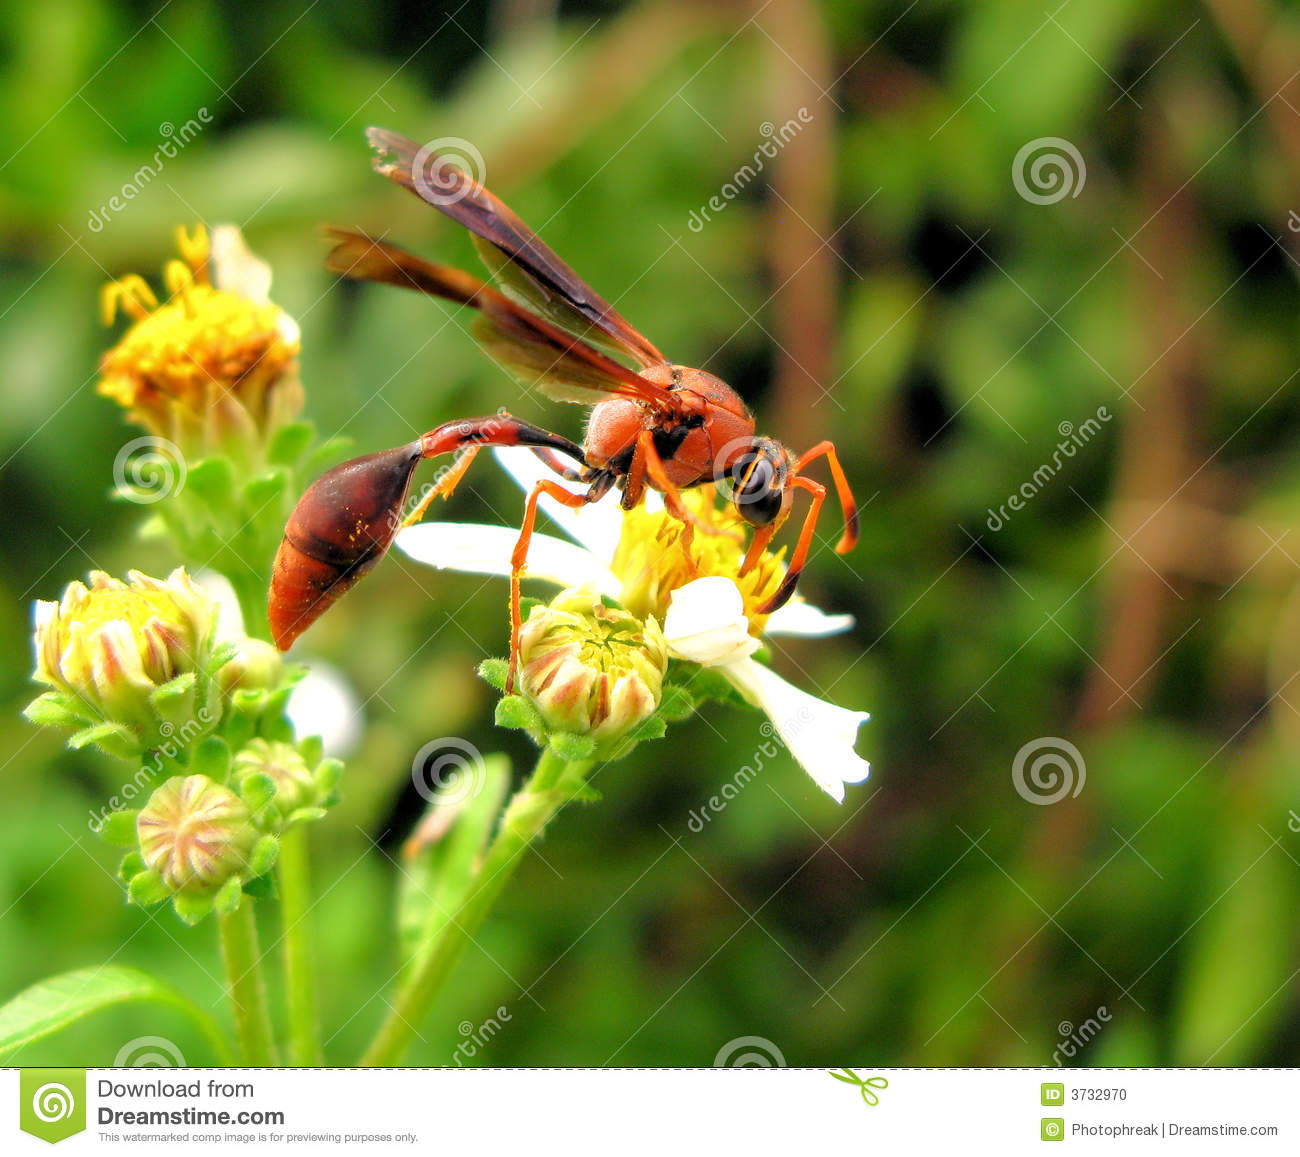 Black Flower Wasp From Australia: Insect On Flower Stock Photo